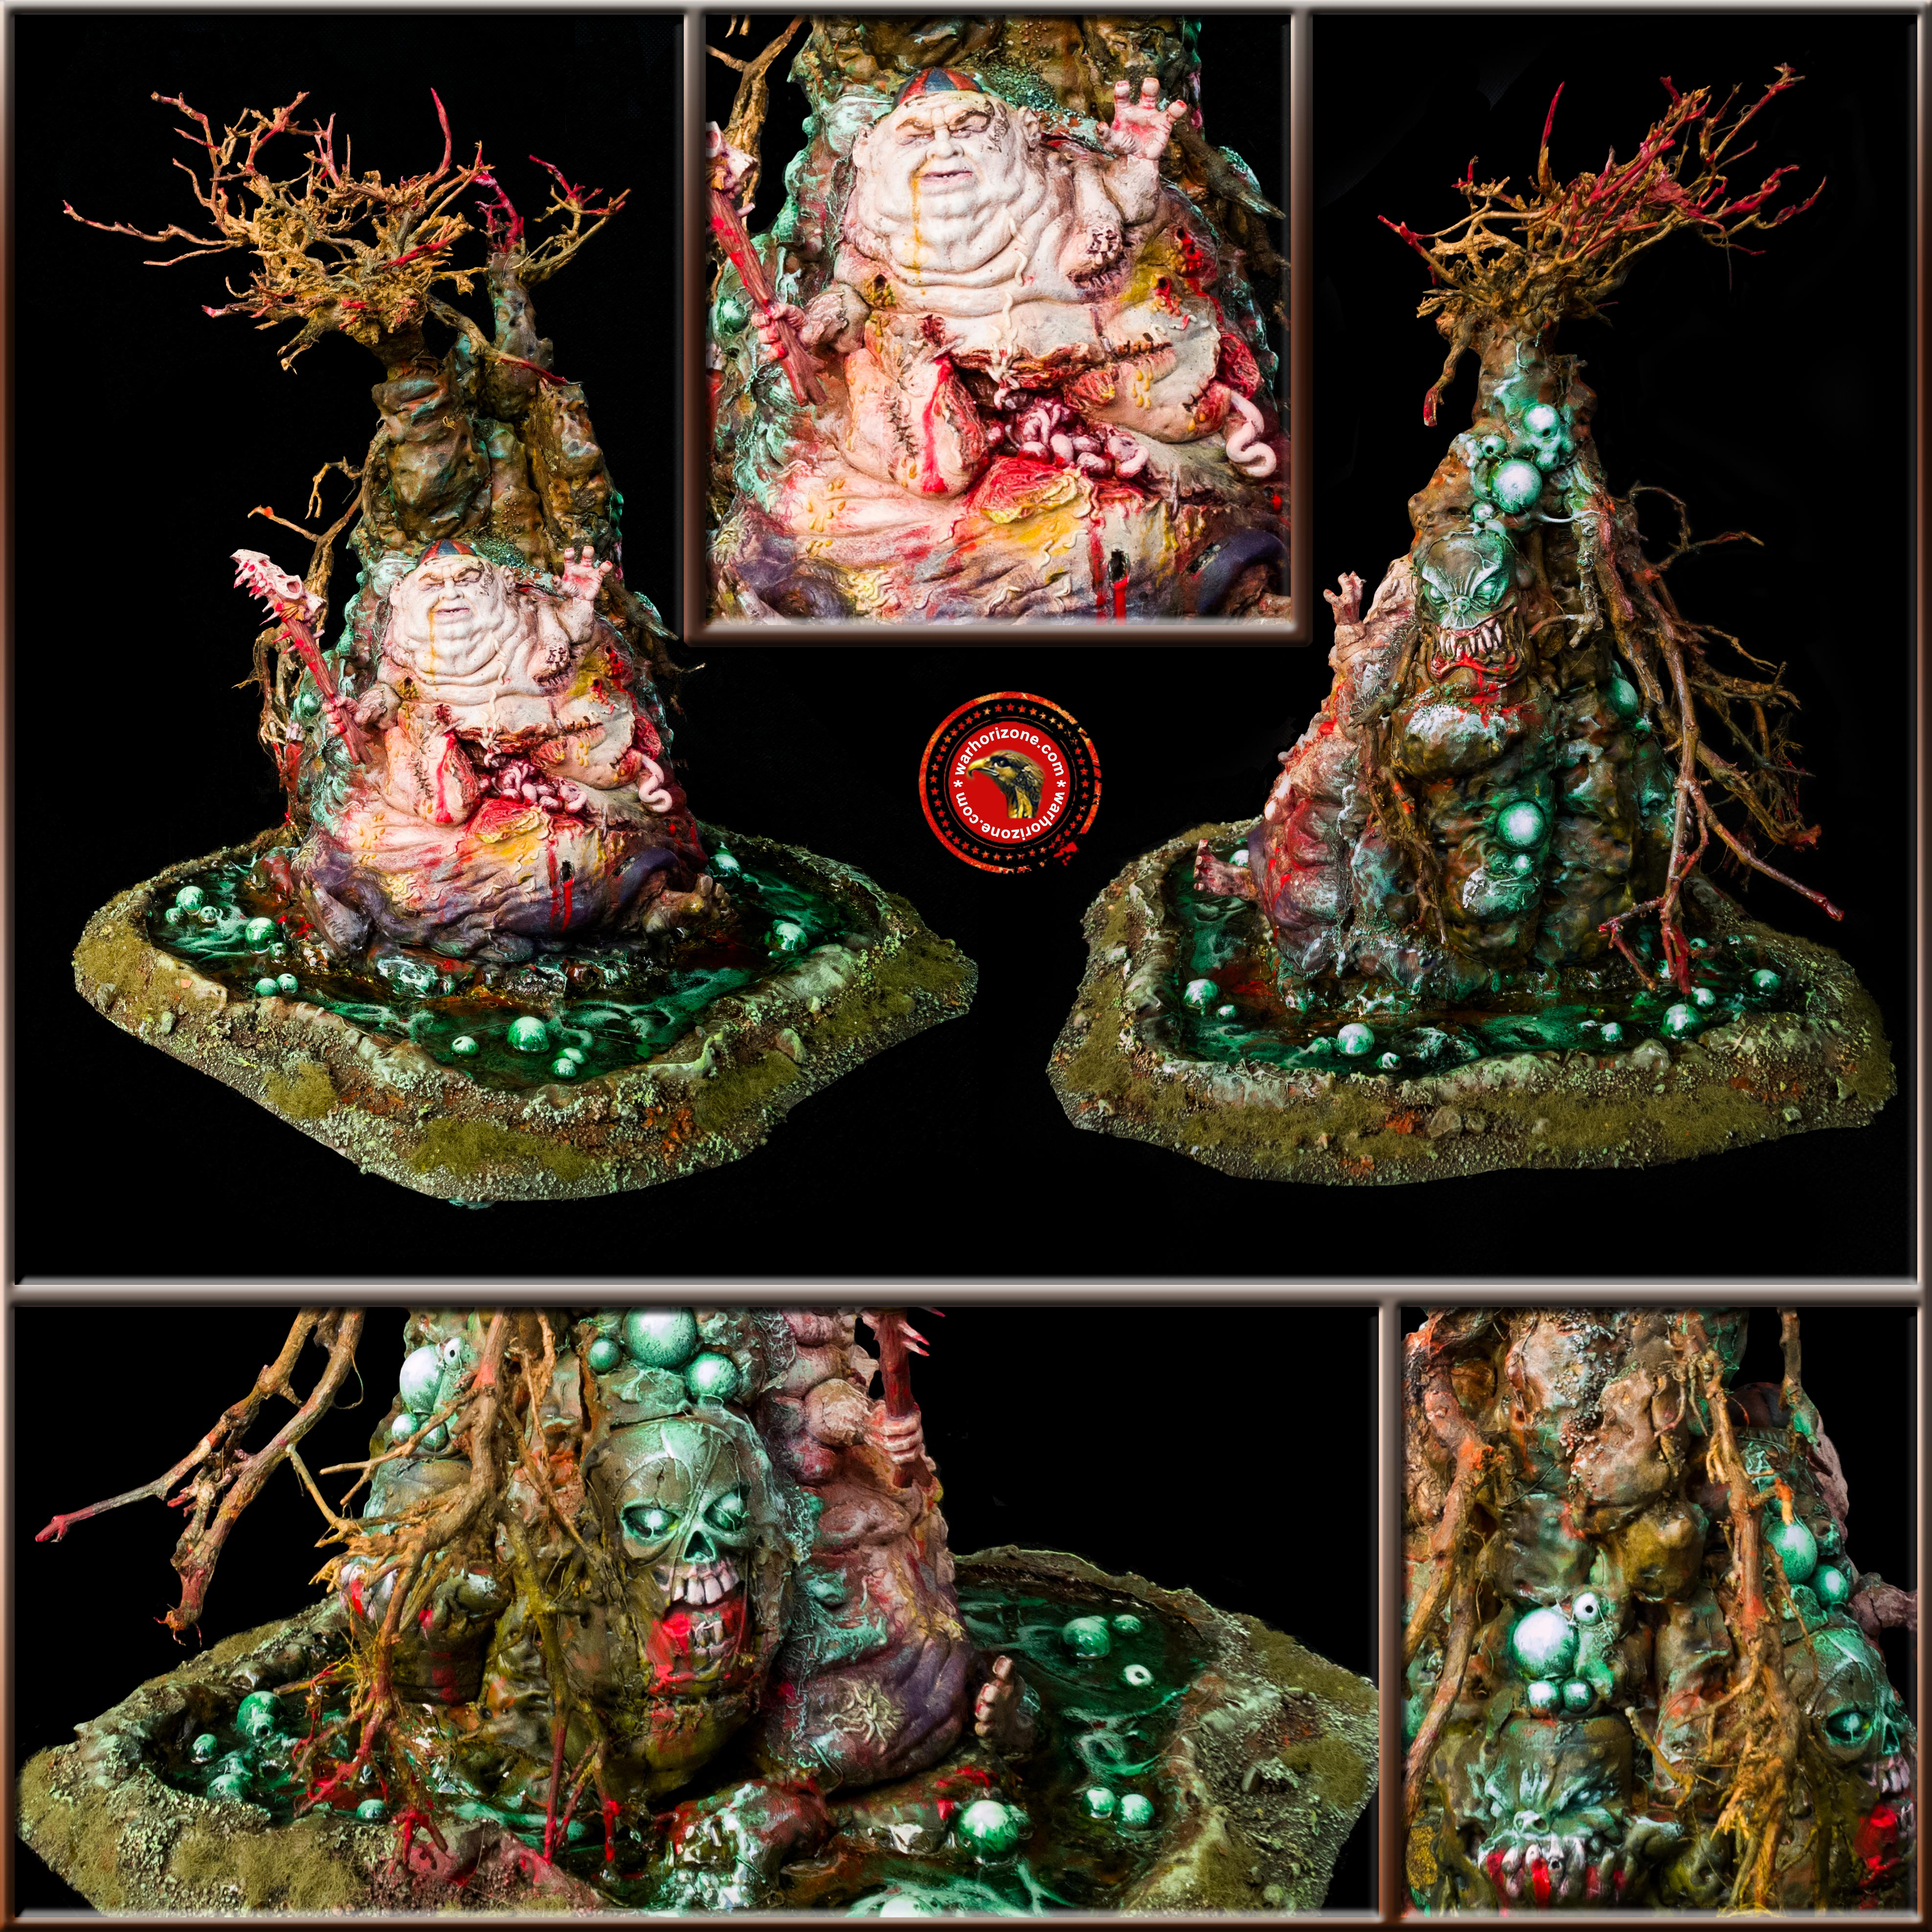 GREAT UNCLEAN MONSTER TREE